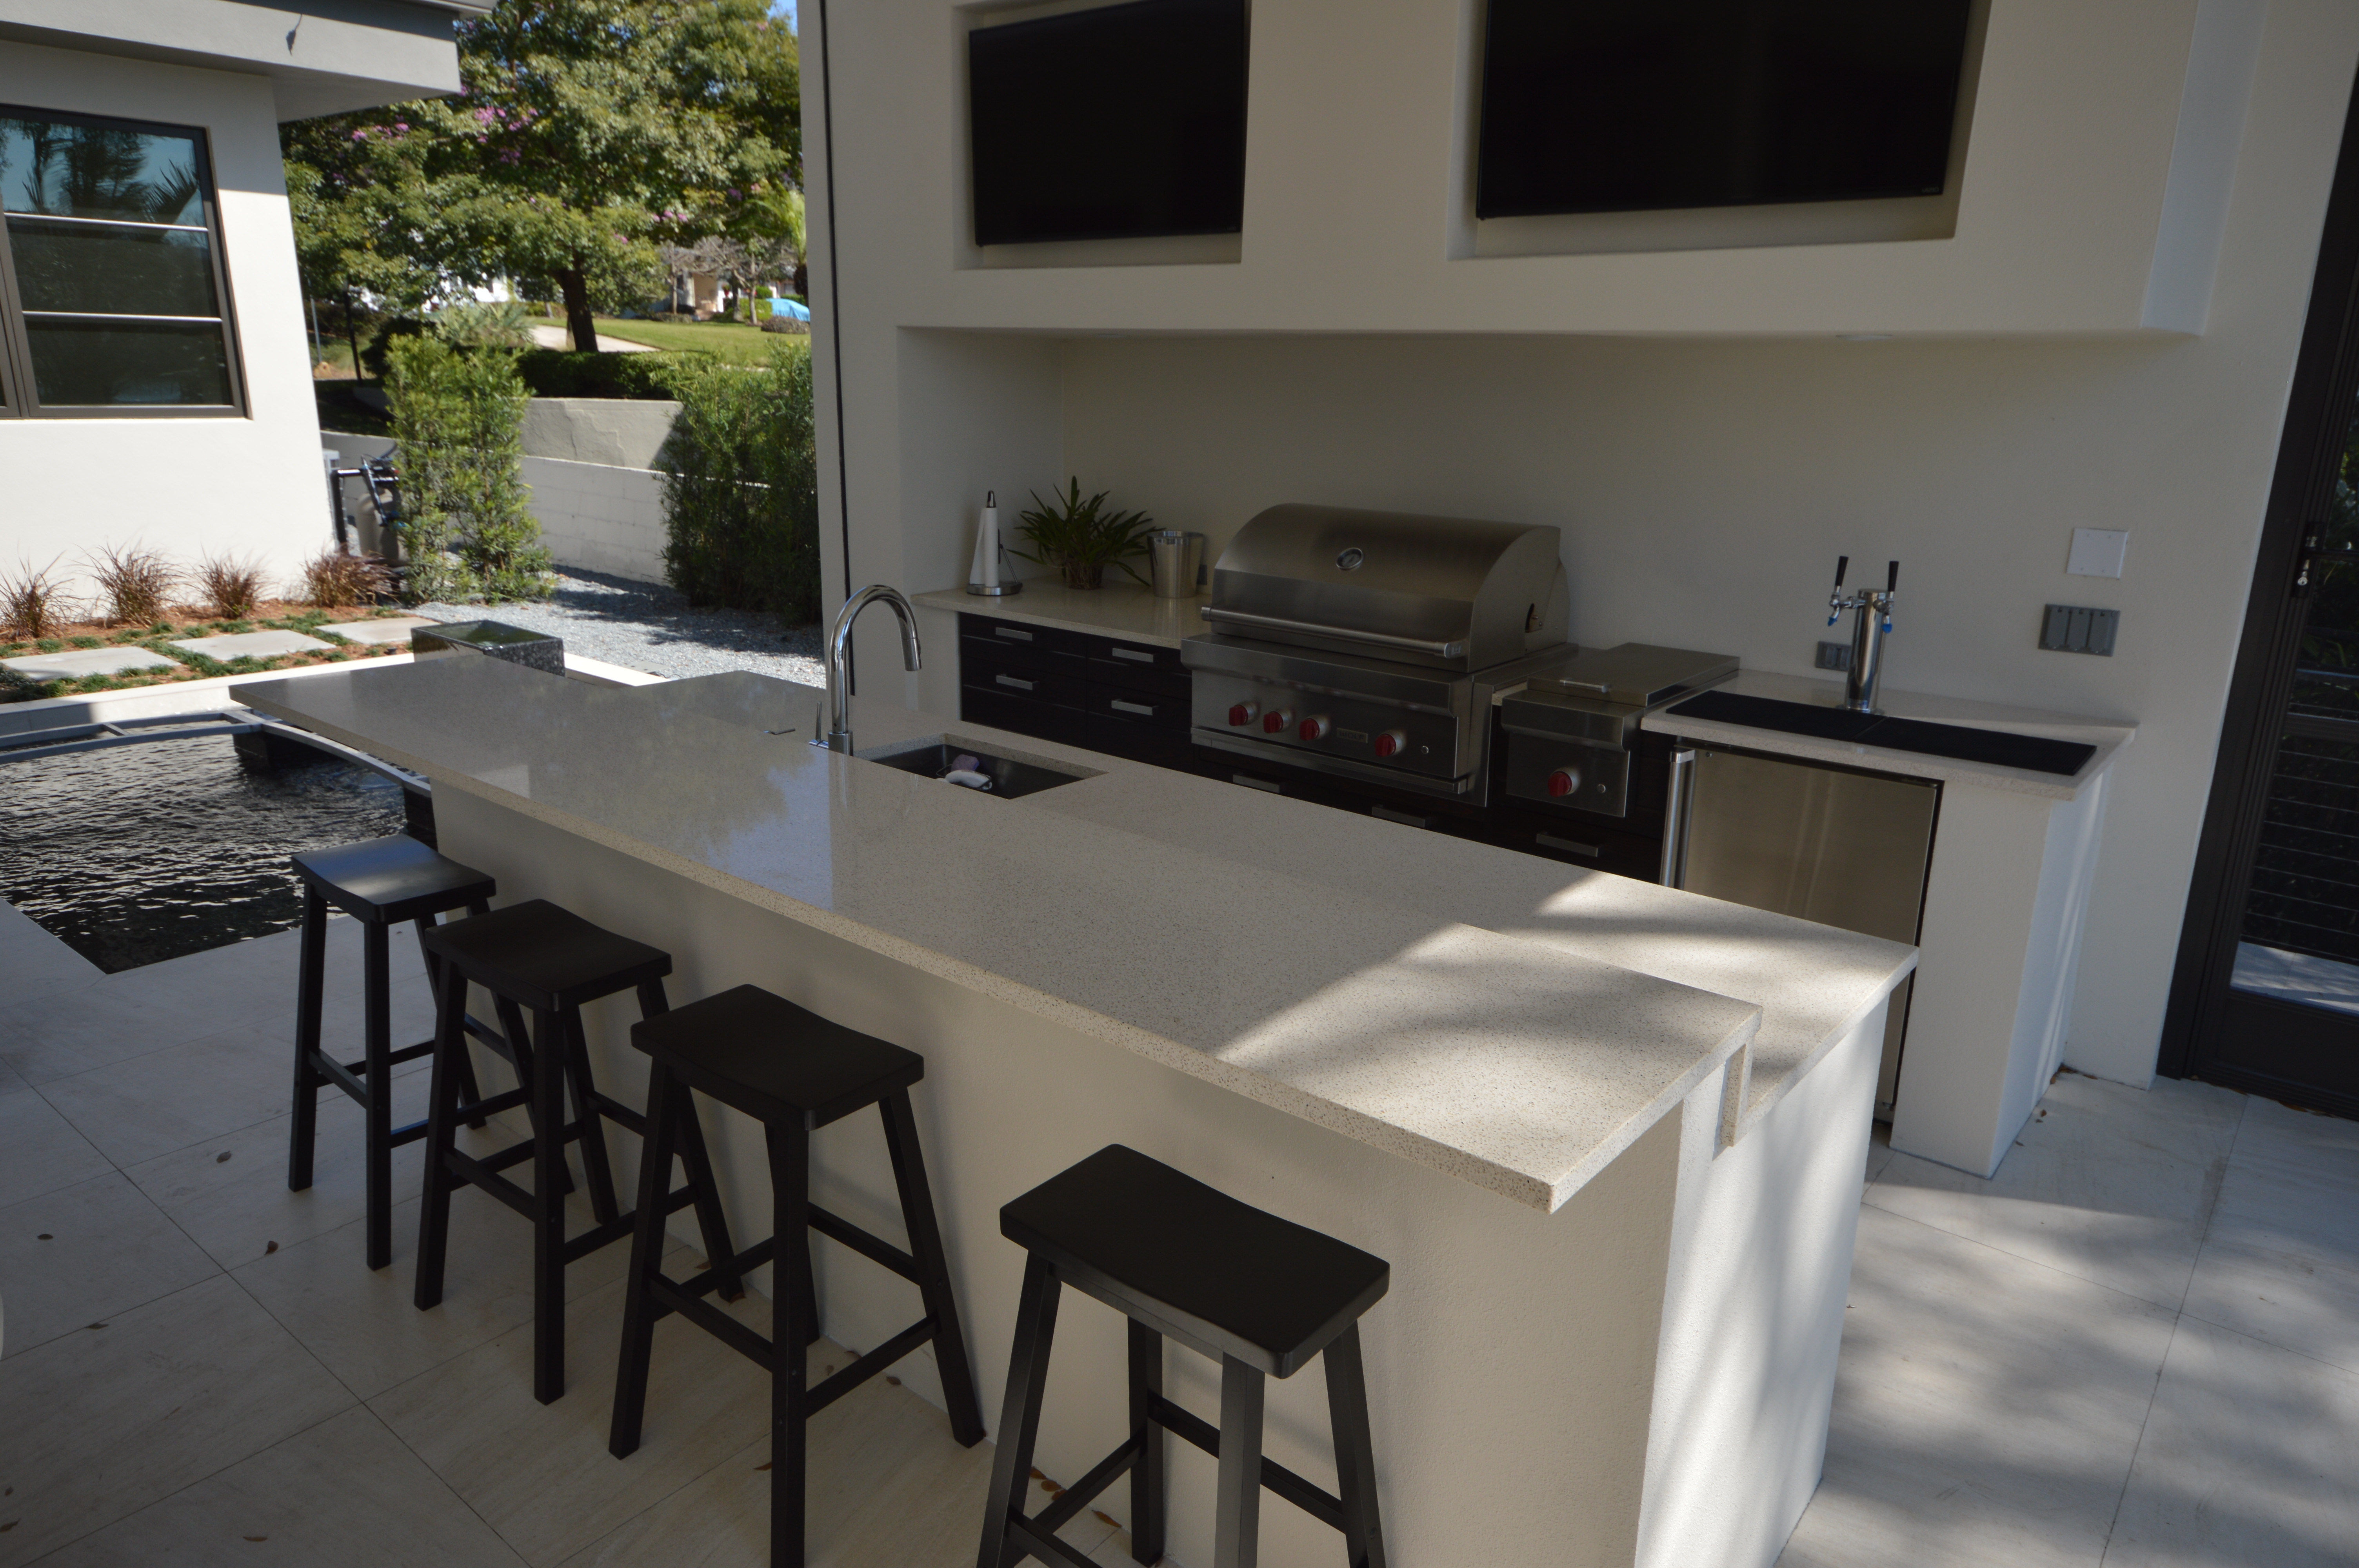 Best ideas about Outdoor Kitchen Countertops . Save or Pin Outdoor Kitchen Countertops Orlando Now.